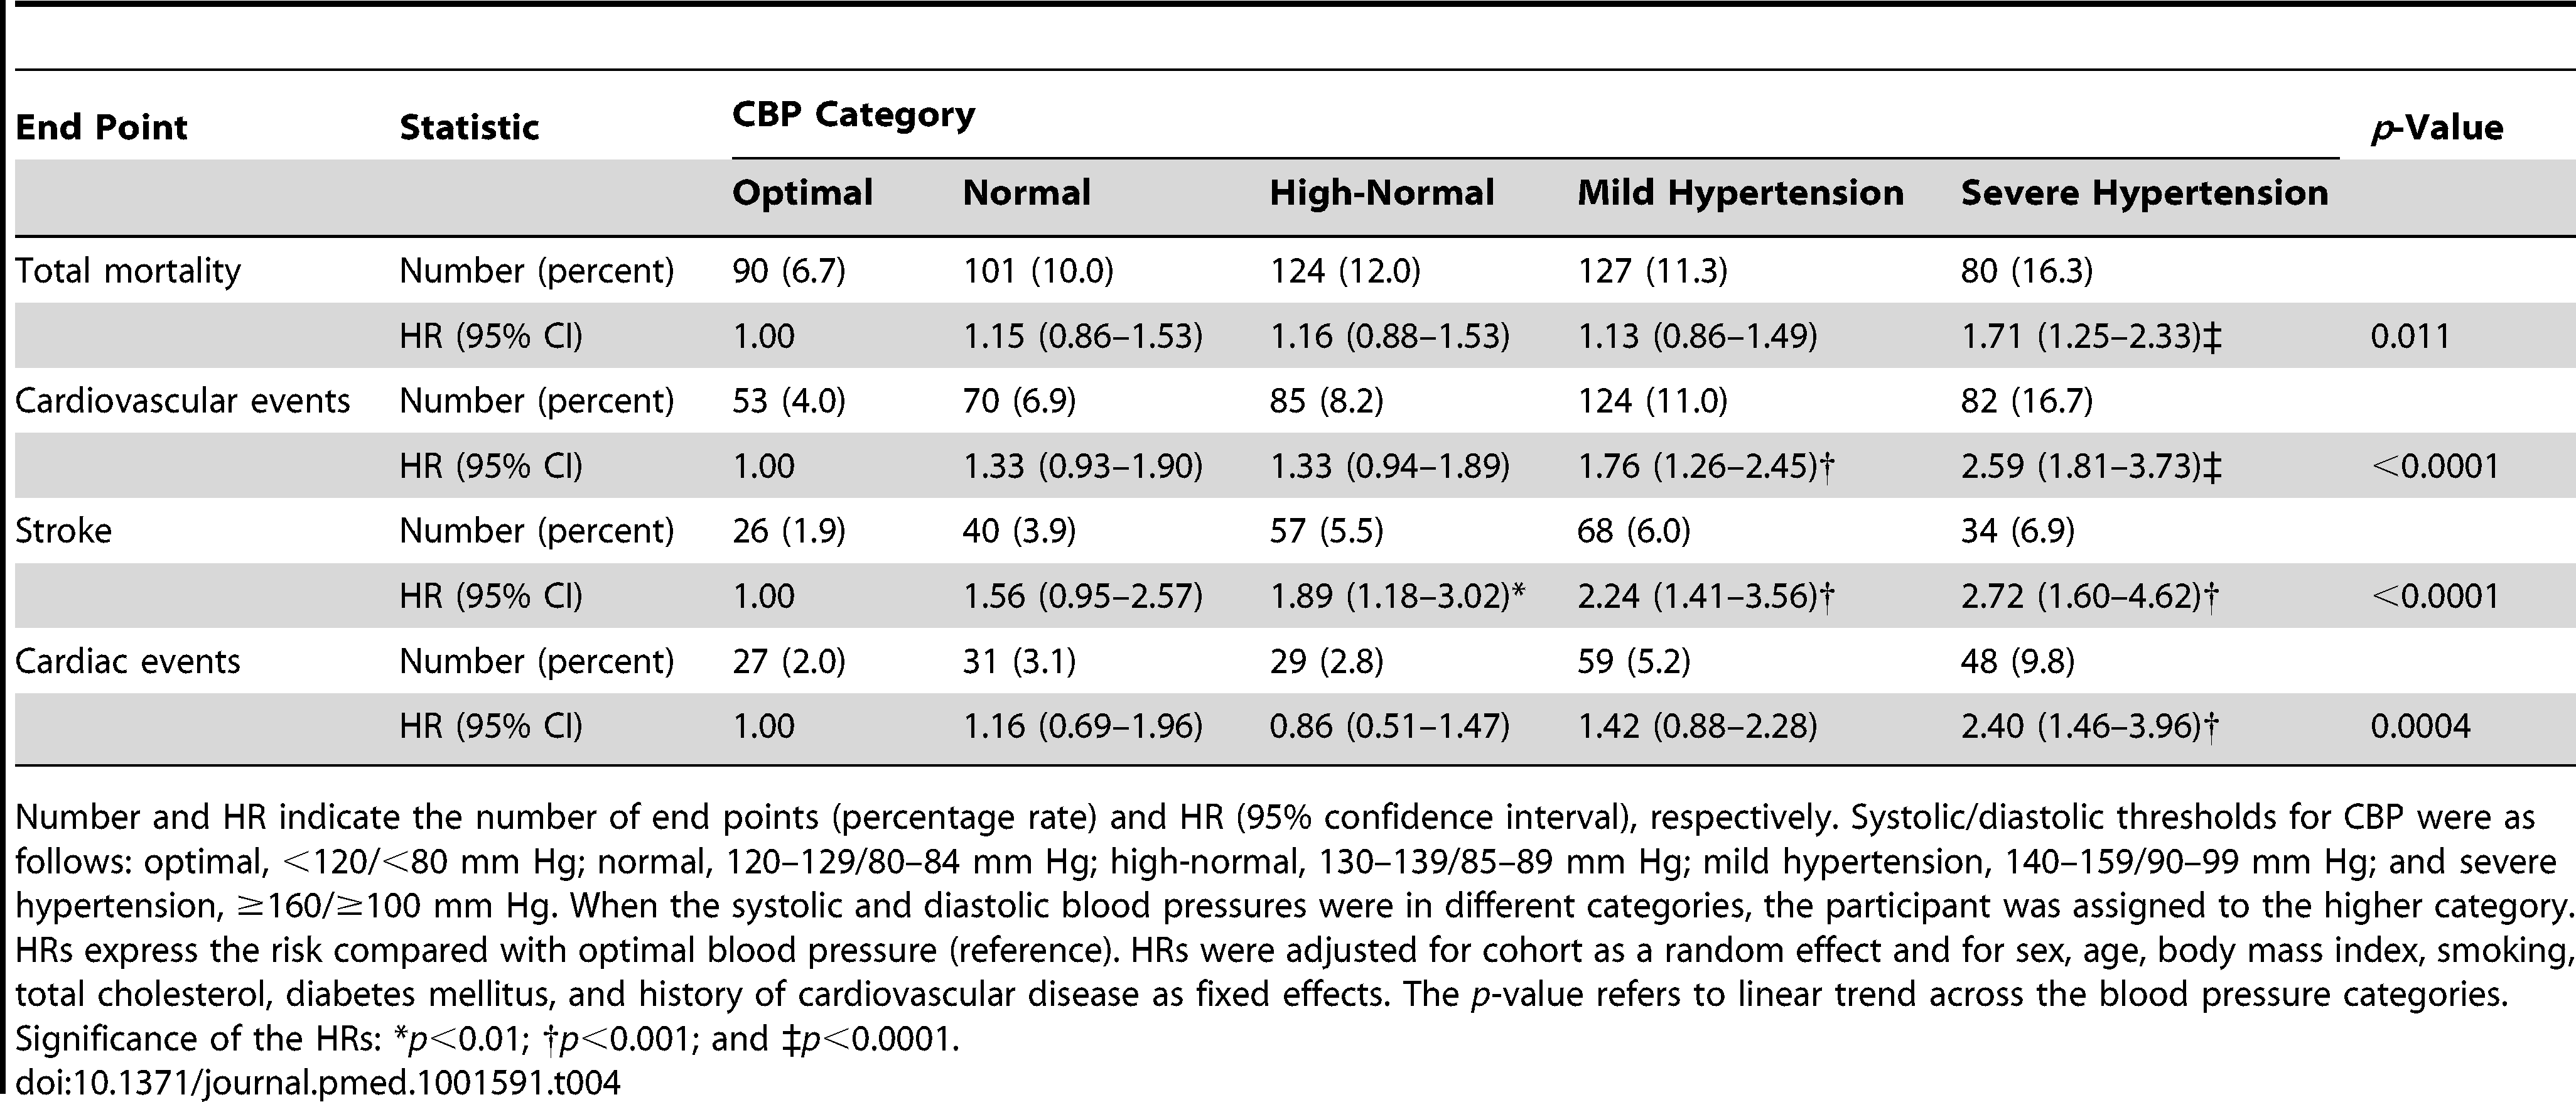 Risks associated with increasing categories of conventional blood pressure.